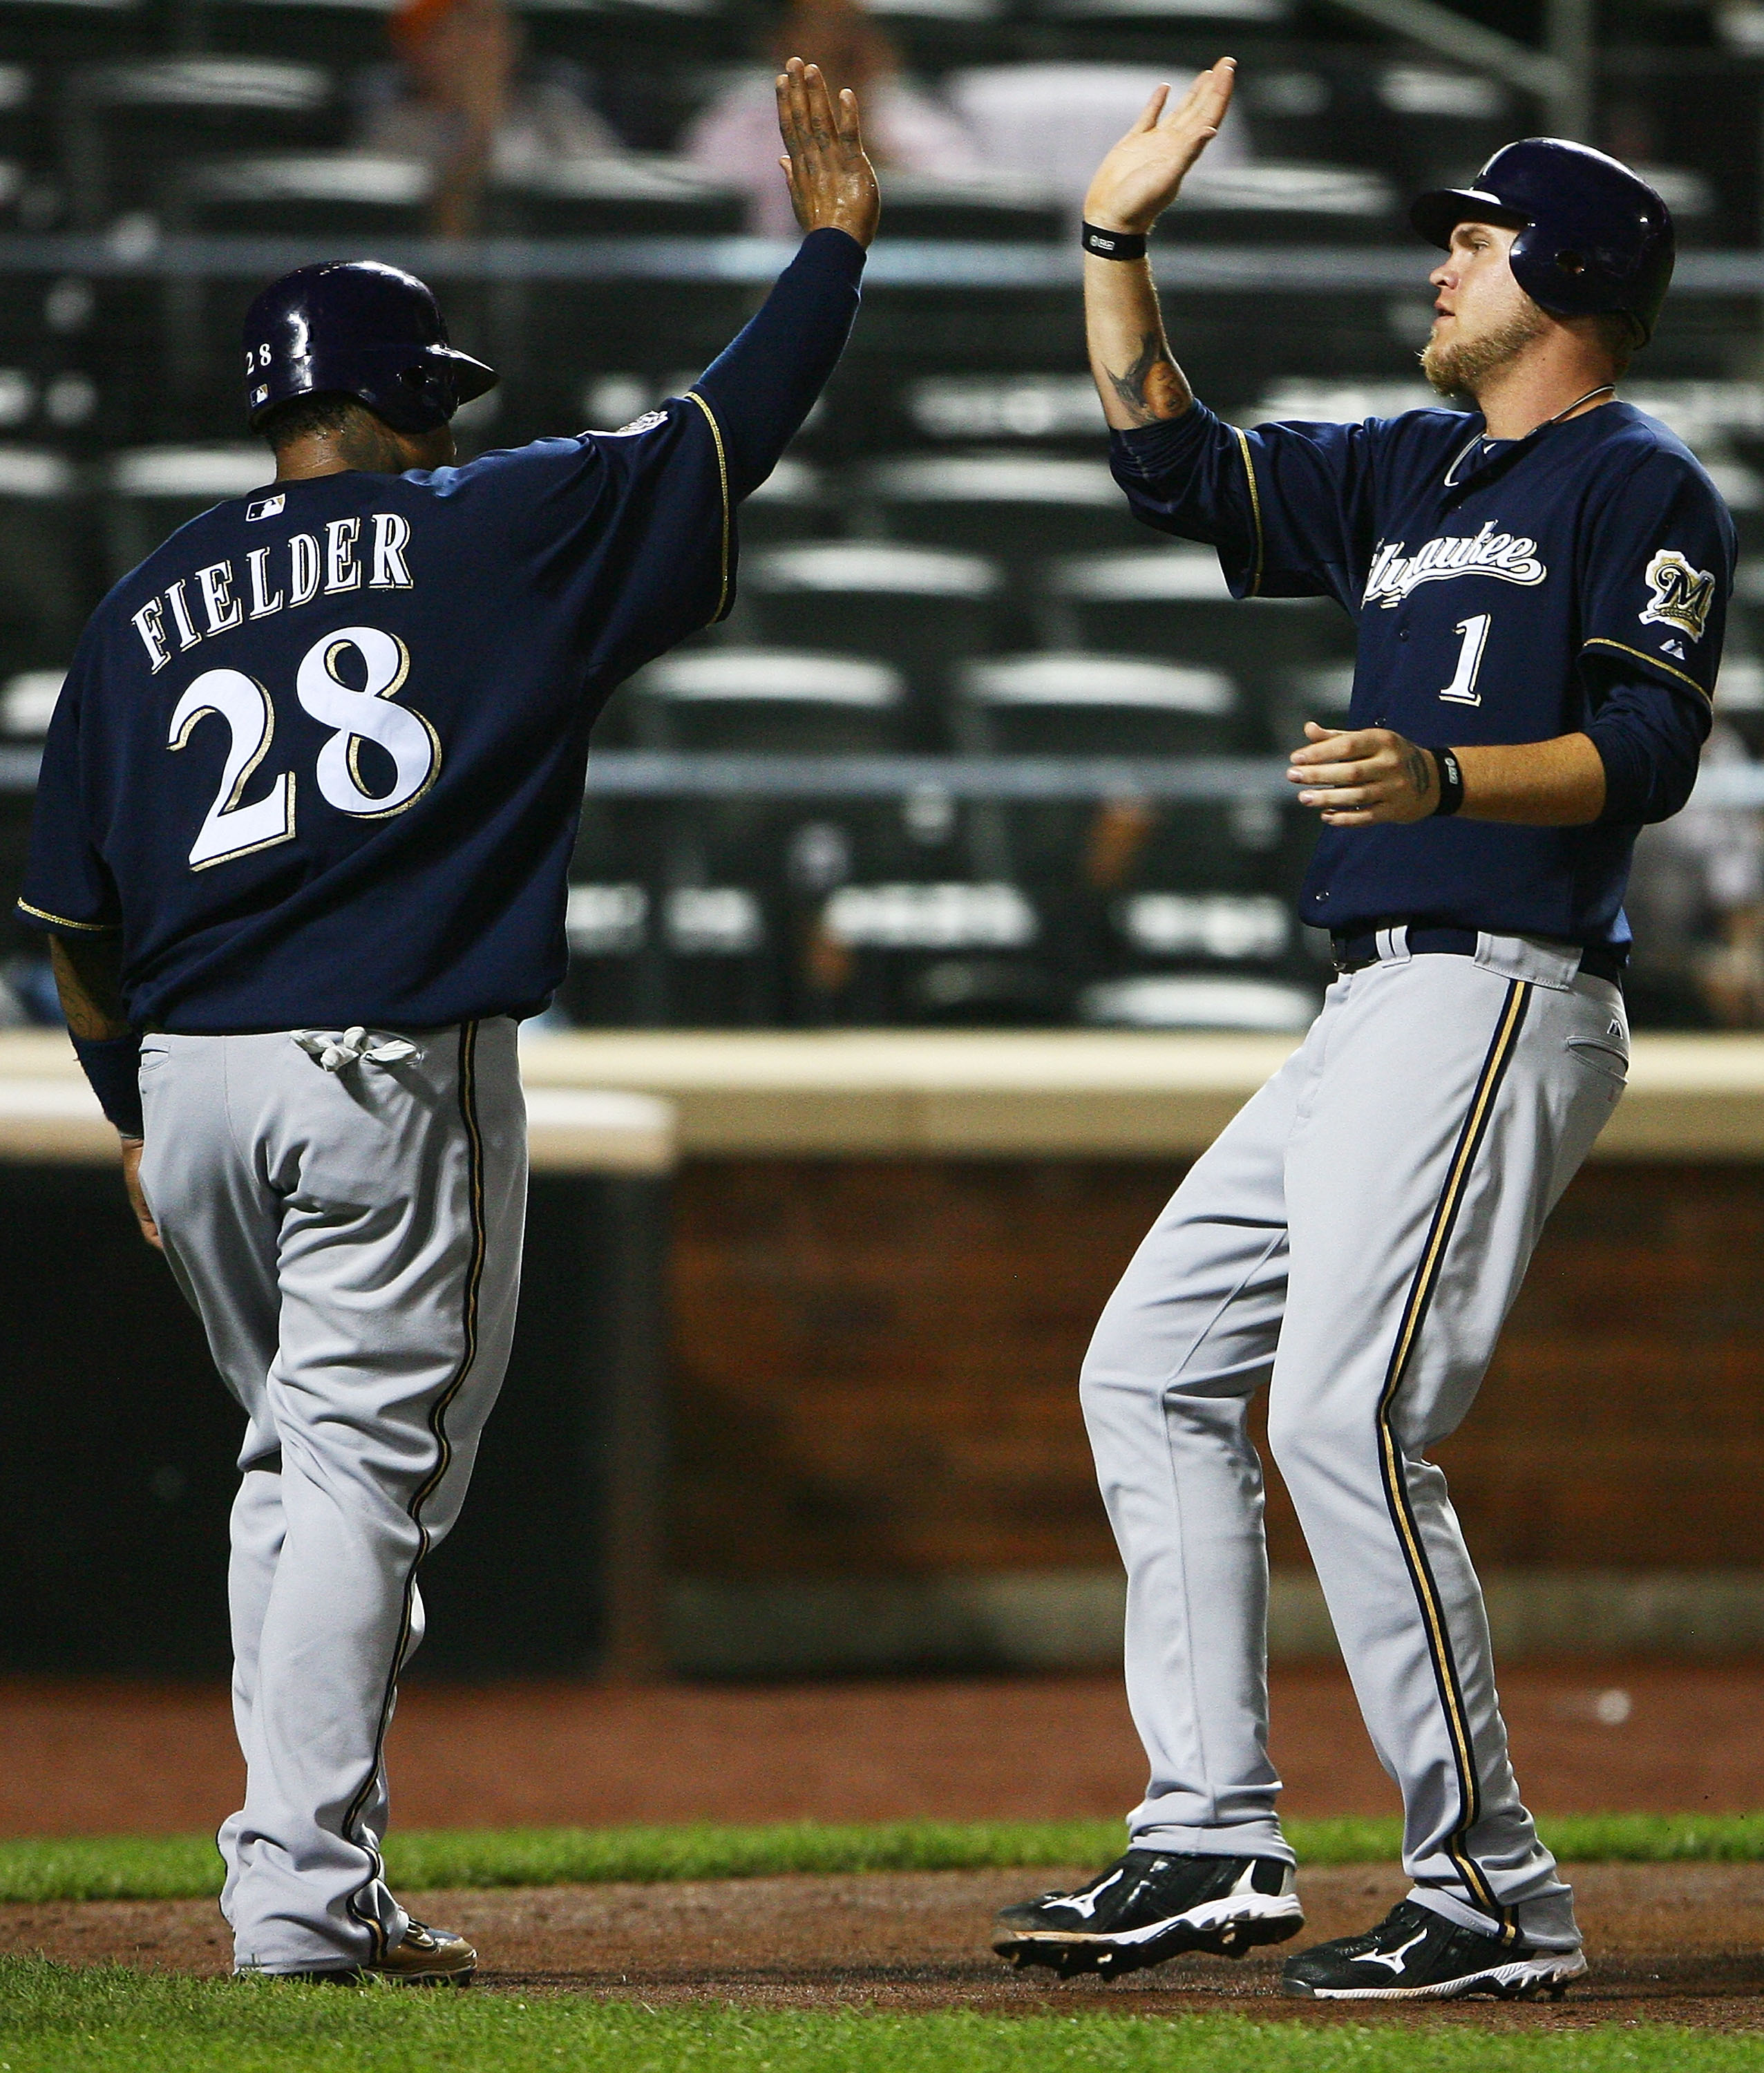 NEW YORK - SEPTEMBER 30:  Prince Fielder #28 (L) and Corey Hart #1 of the Milwaukee Brewers celebrate after both scoring off Lorenzo Cain's double in the fifth inning against the New York Mets on September 30, 2010 at Citi Field in the Flushing neighborho